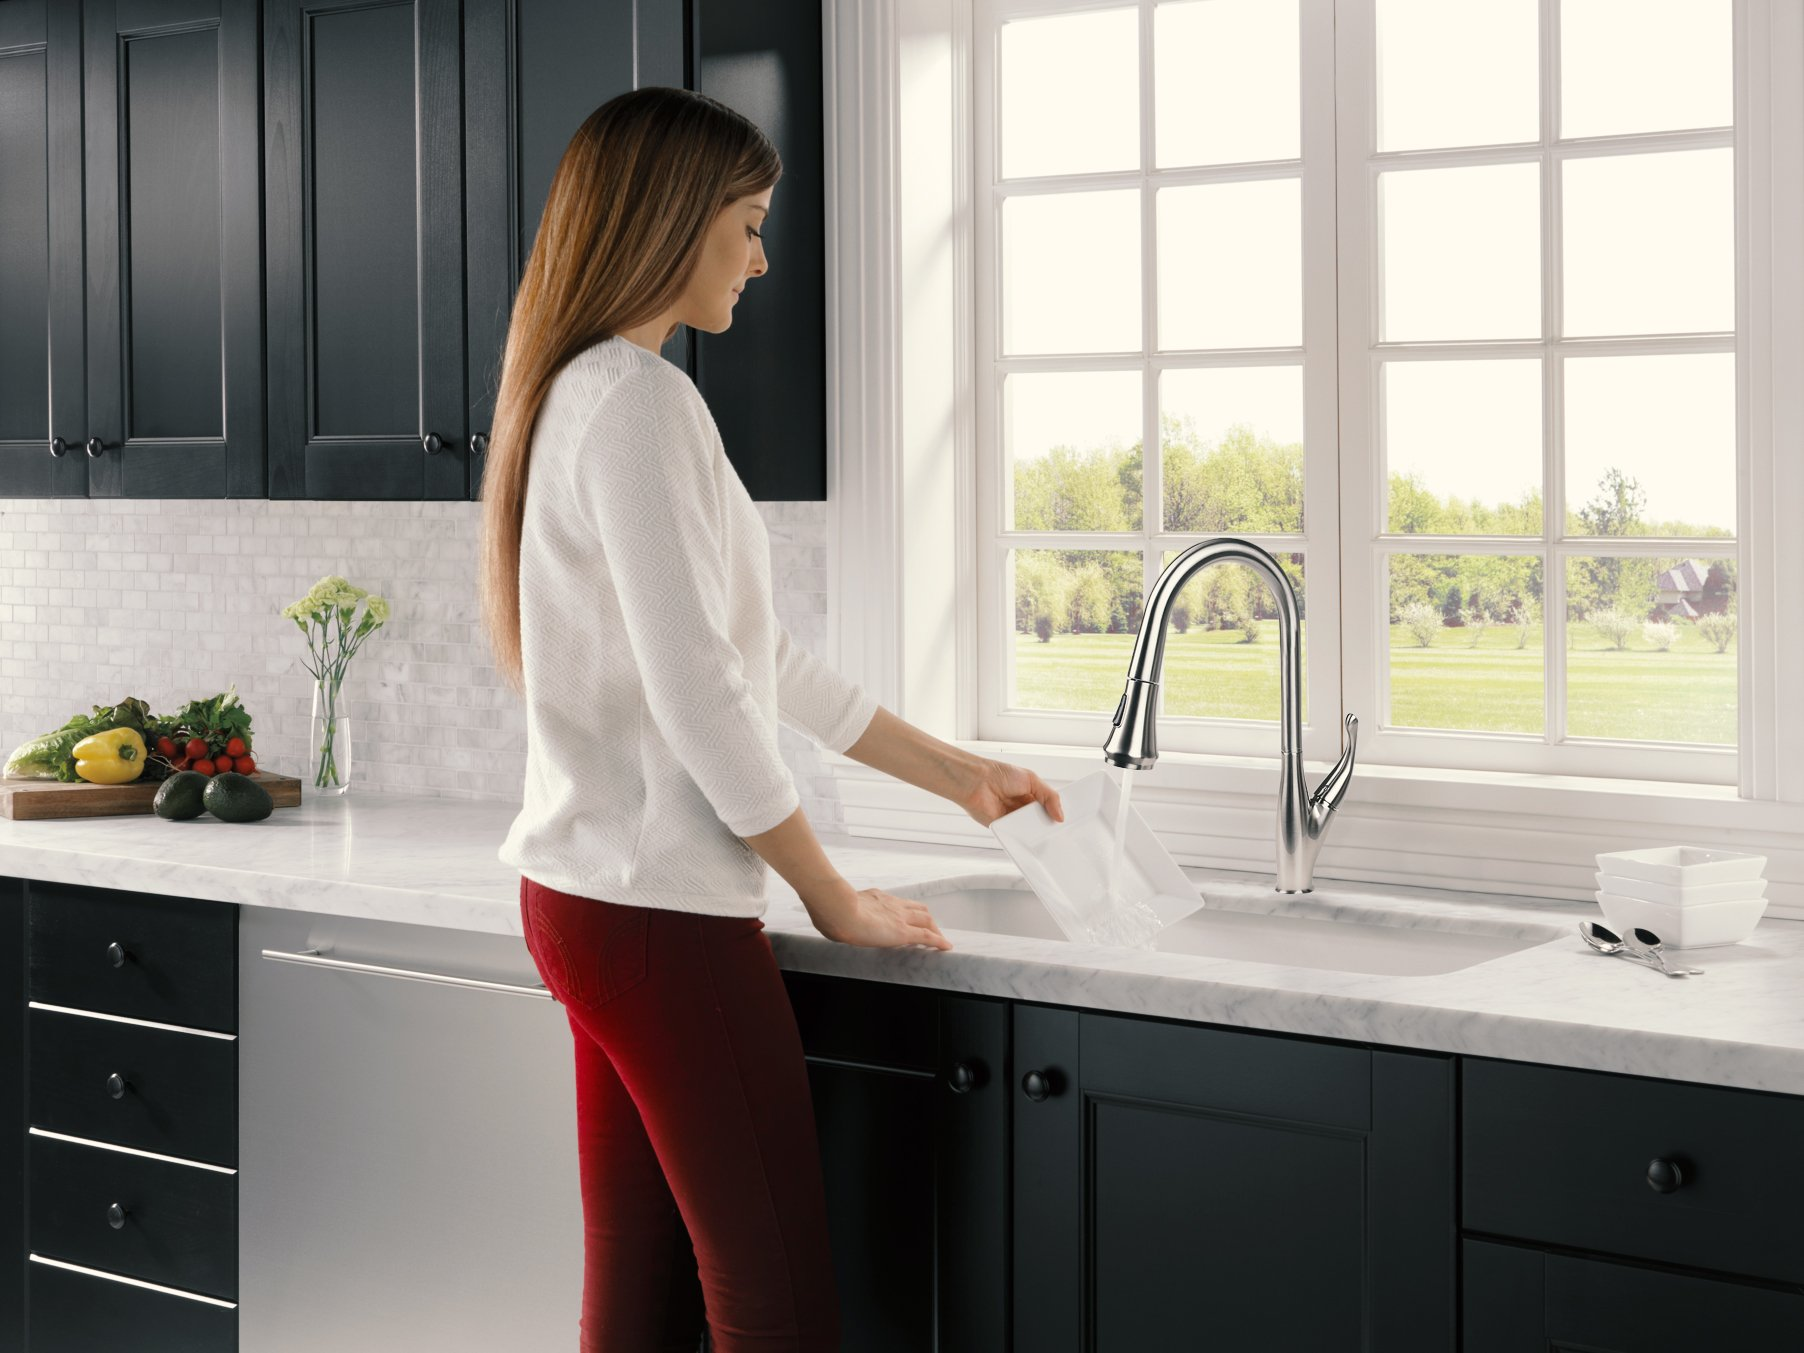 Cosmo COS-KF548SS Modern Luxury High Arc Pull-Down Tap Mixer Kitchen Faucet, Brushed Nickel by Cosmo (Image #7)